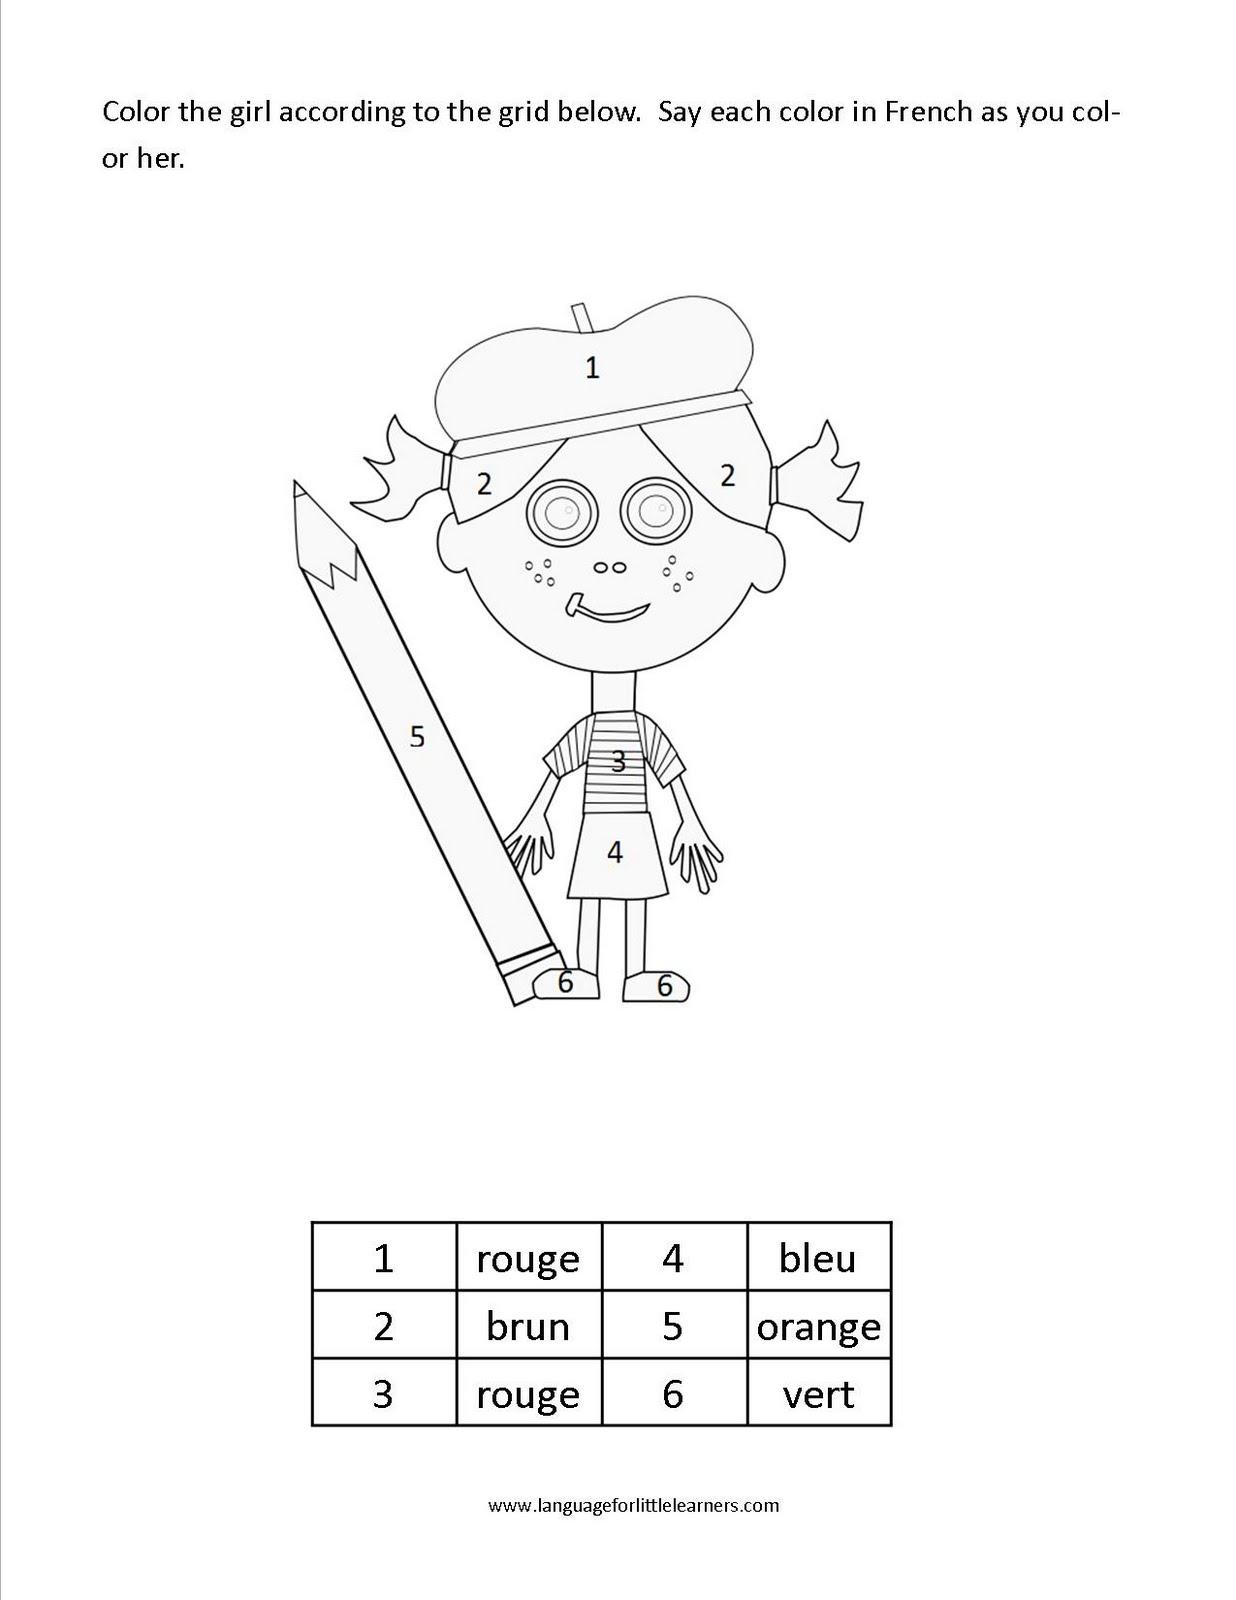 Language For Little Learners Color Worksheet Freebie